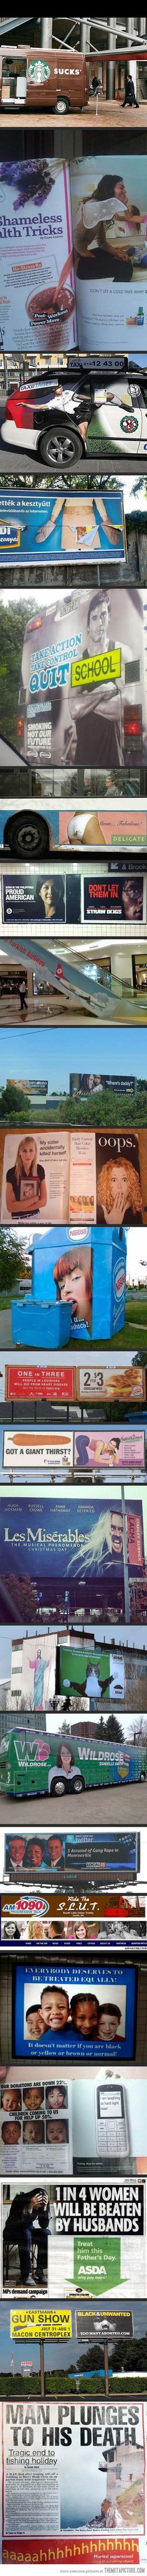 23 Unfortunate Ad Placements #funny